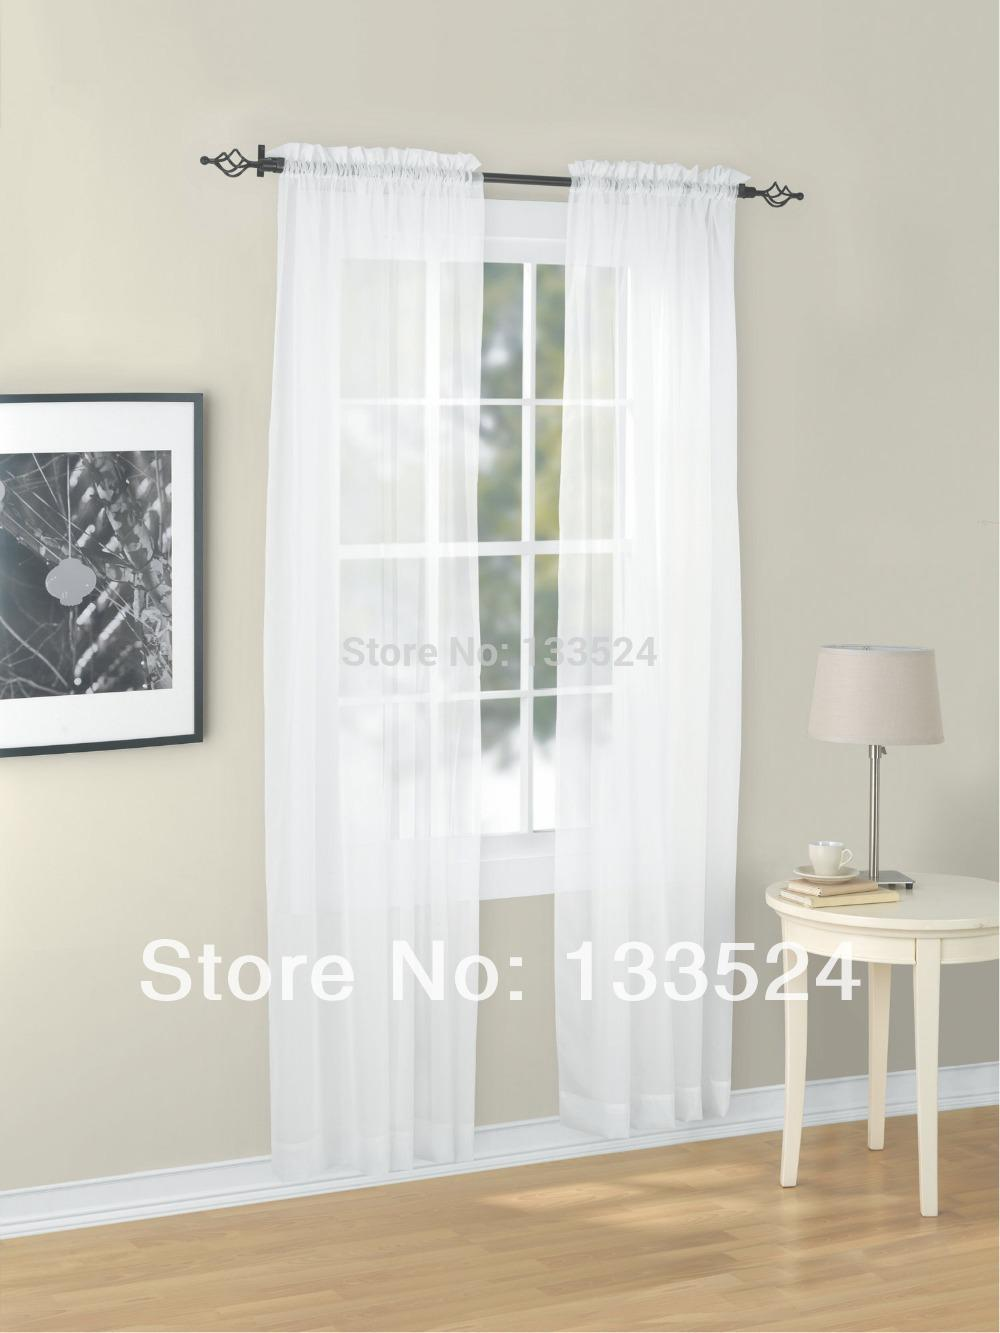 Sheer yellow curtains - Sheer Yellow Curtains 45 Wholesale Euphoria Window Valance Curtain Panel Voile Sheer Sheers Solid Color